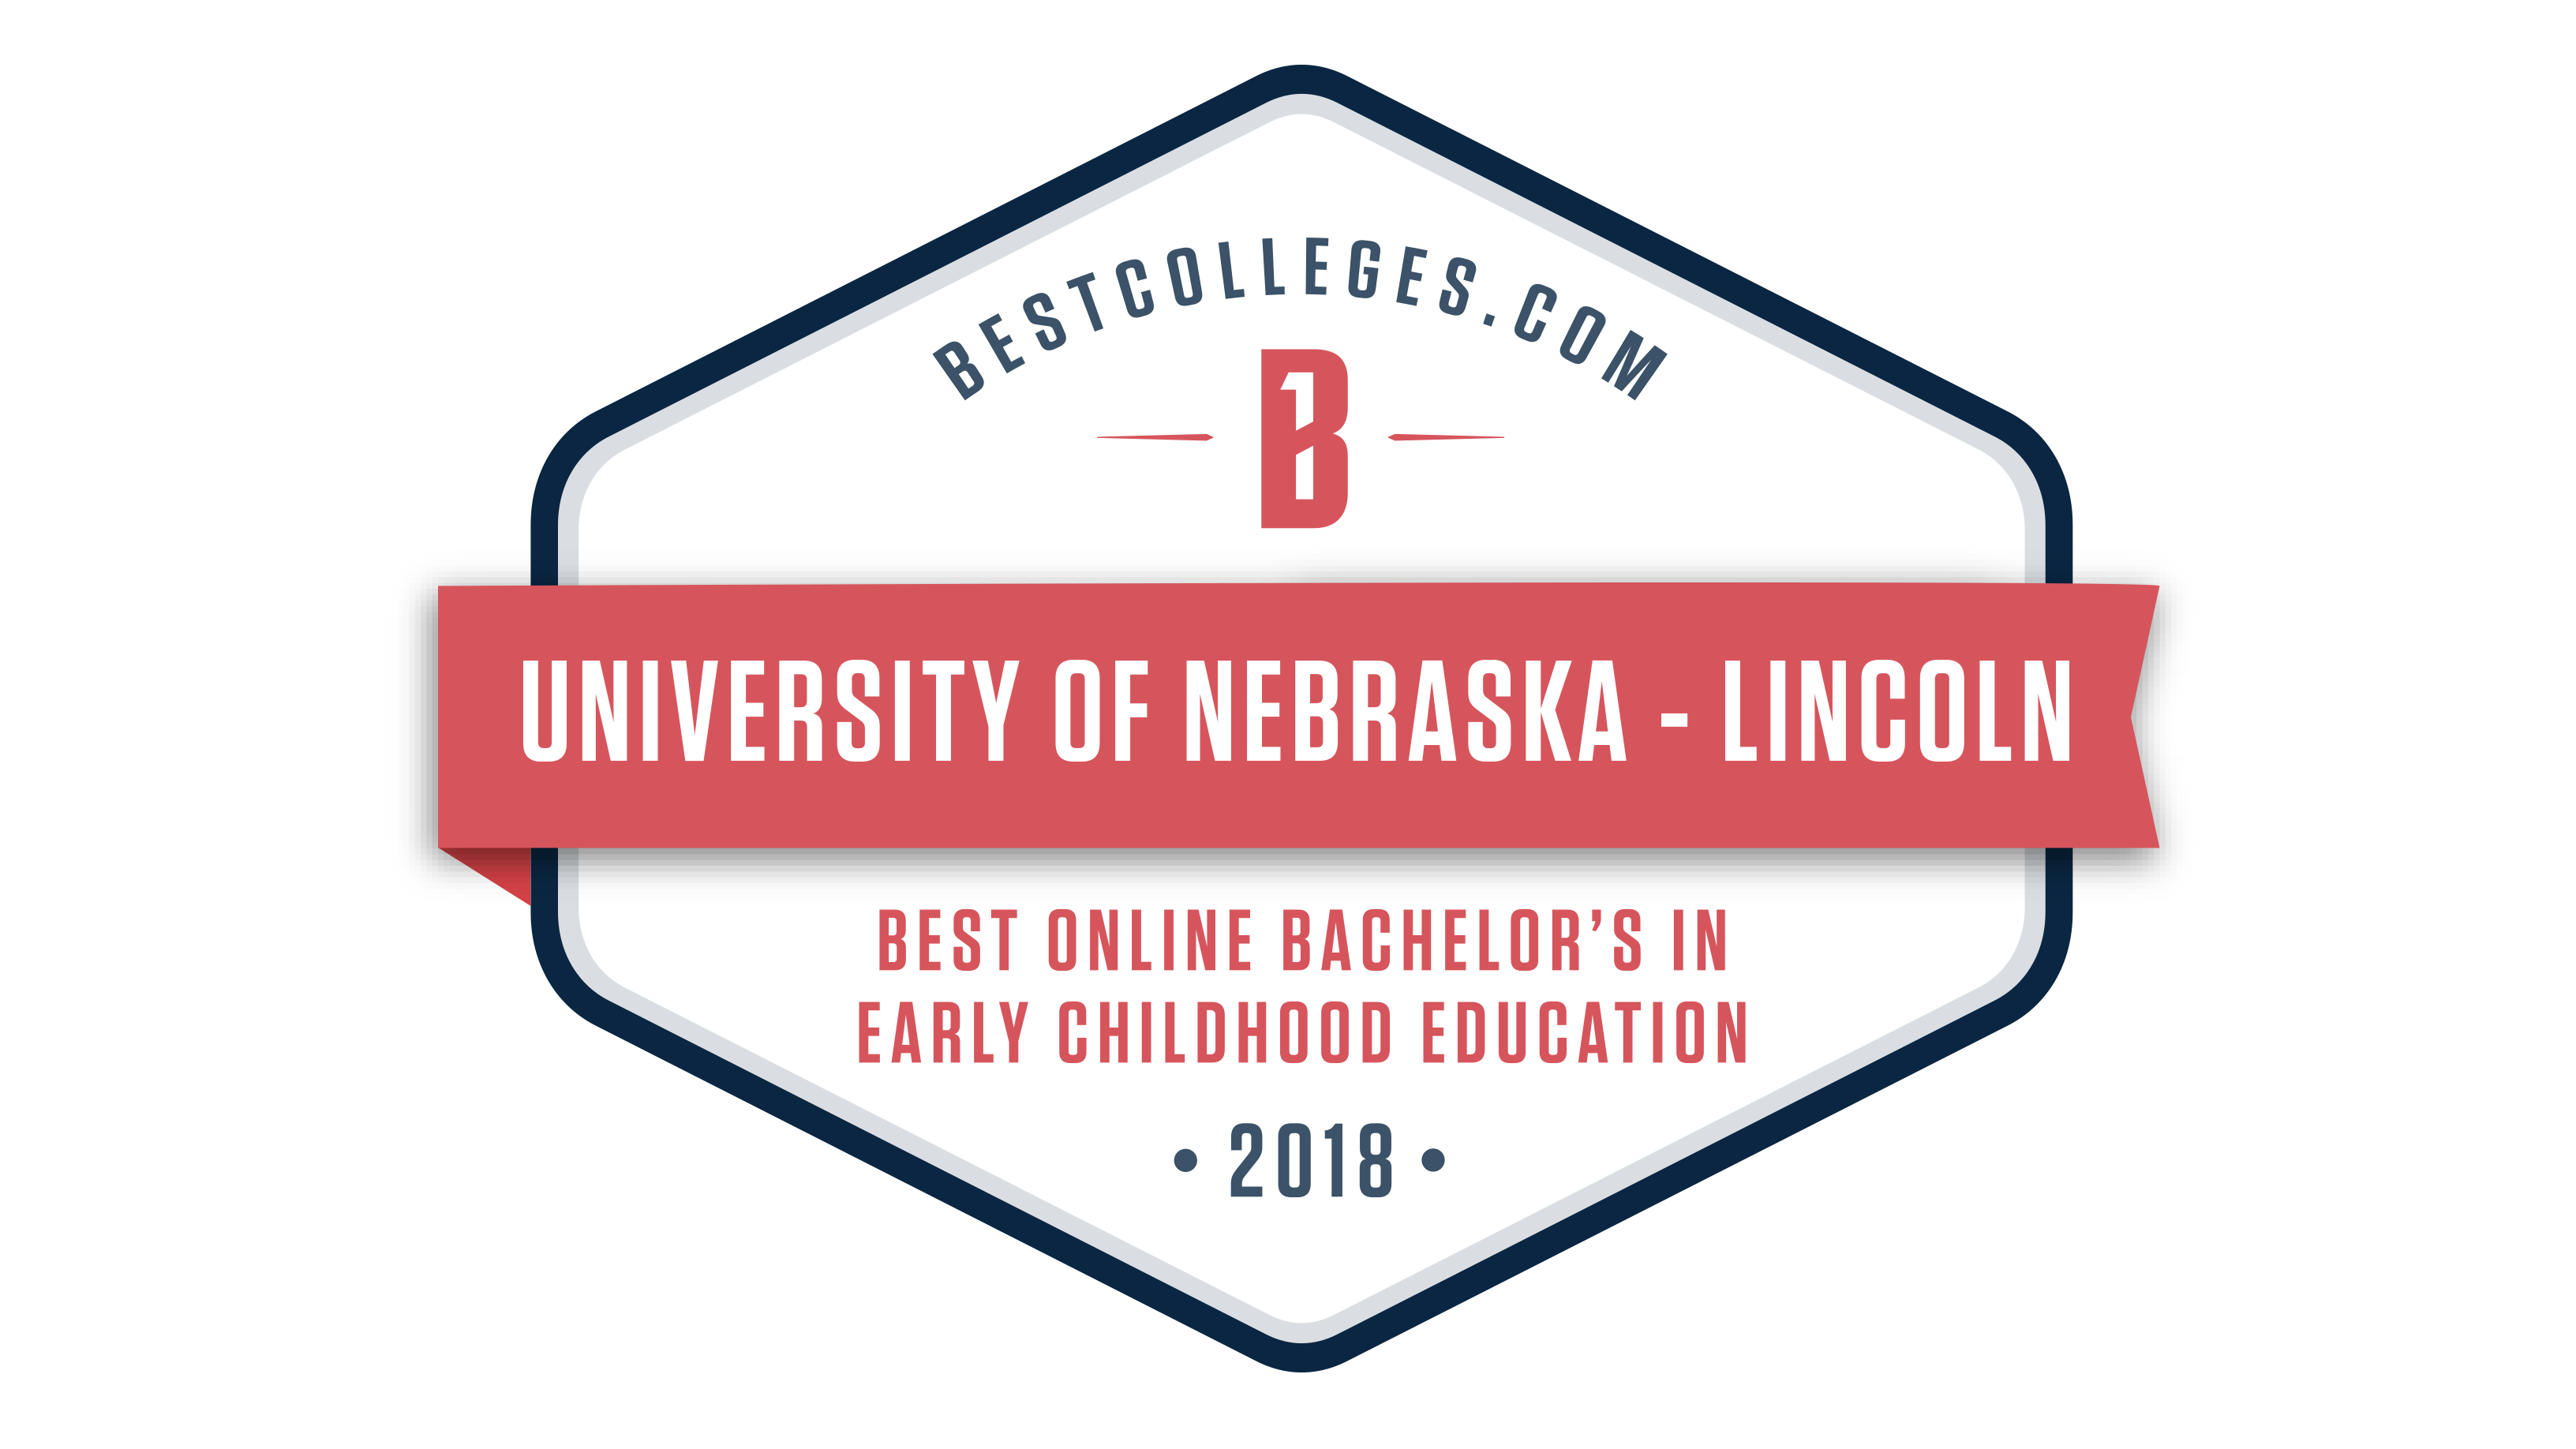 Online Early Childhood Education program among nation's best